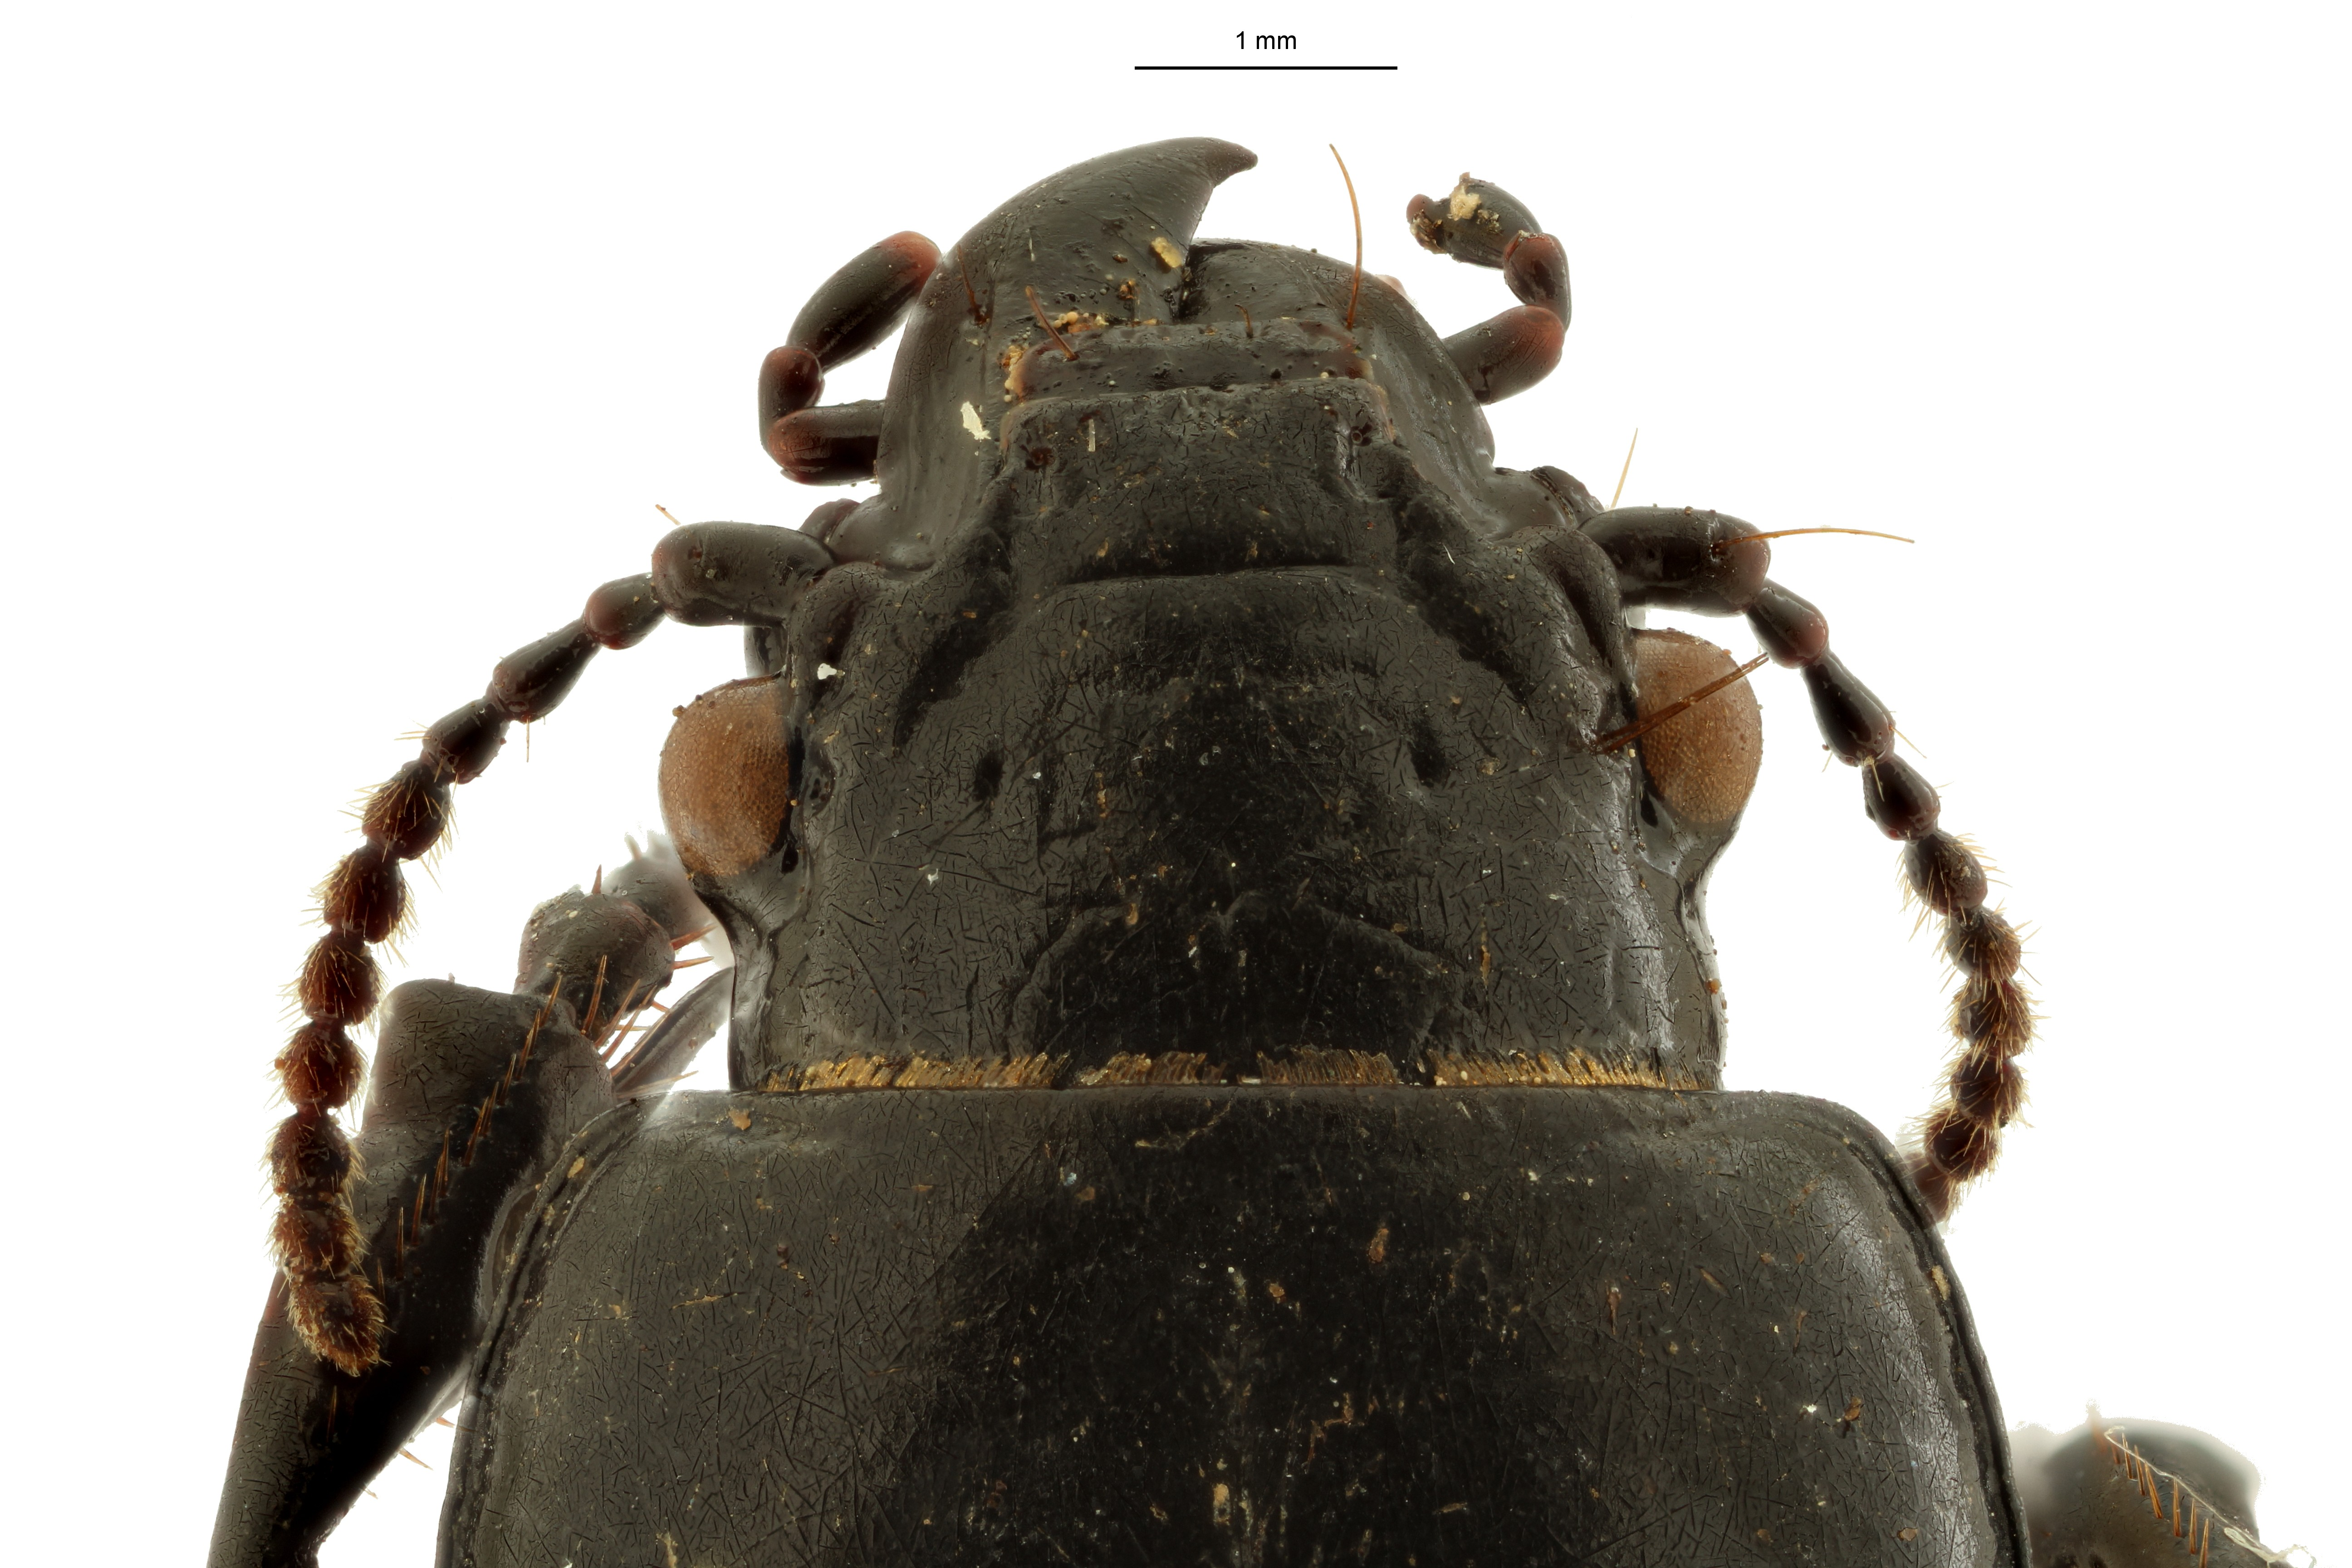 Percosoma asymetricum t DH ZS PMax Scaled.jpeg